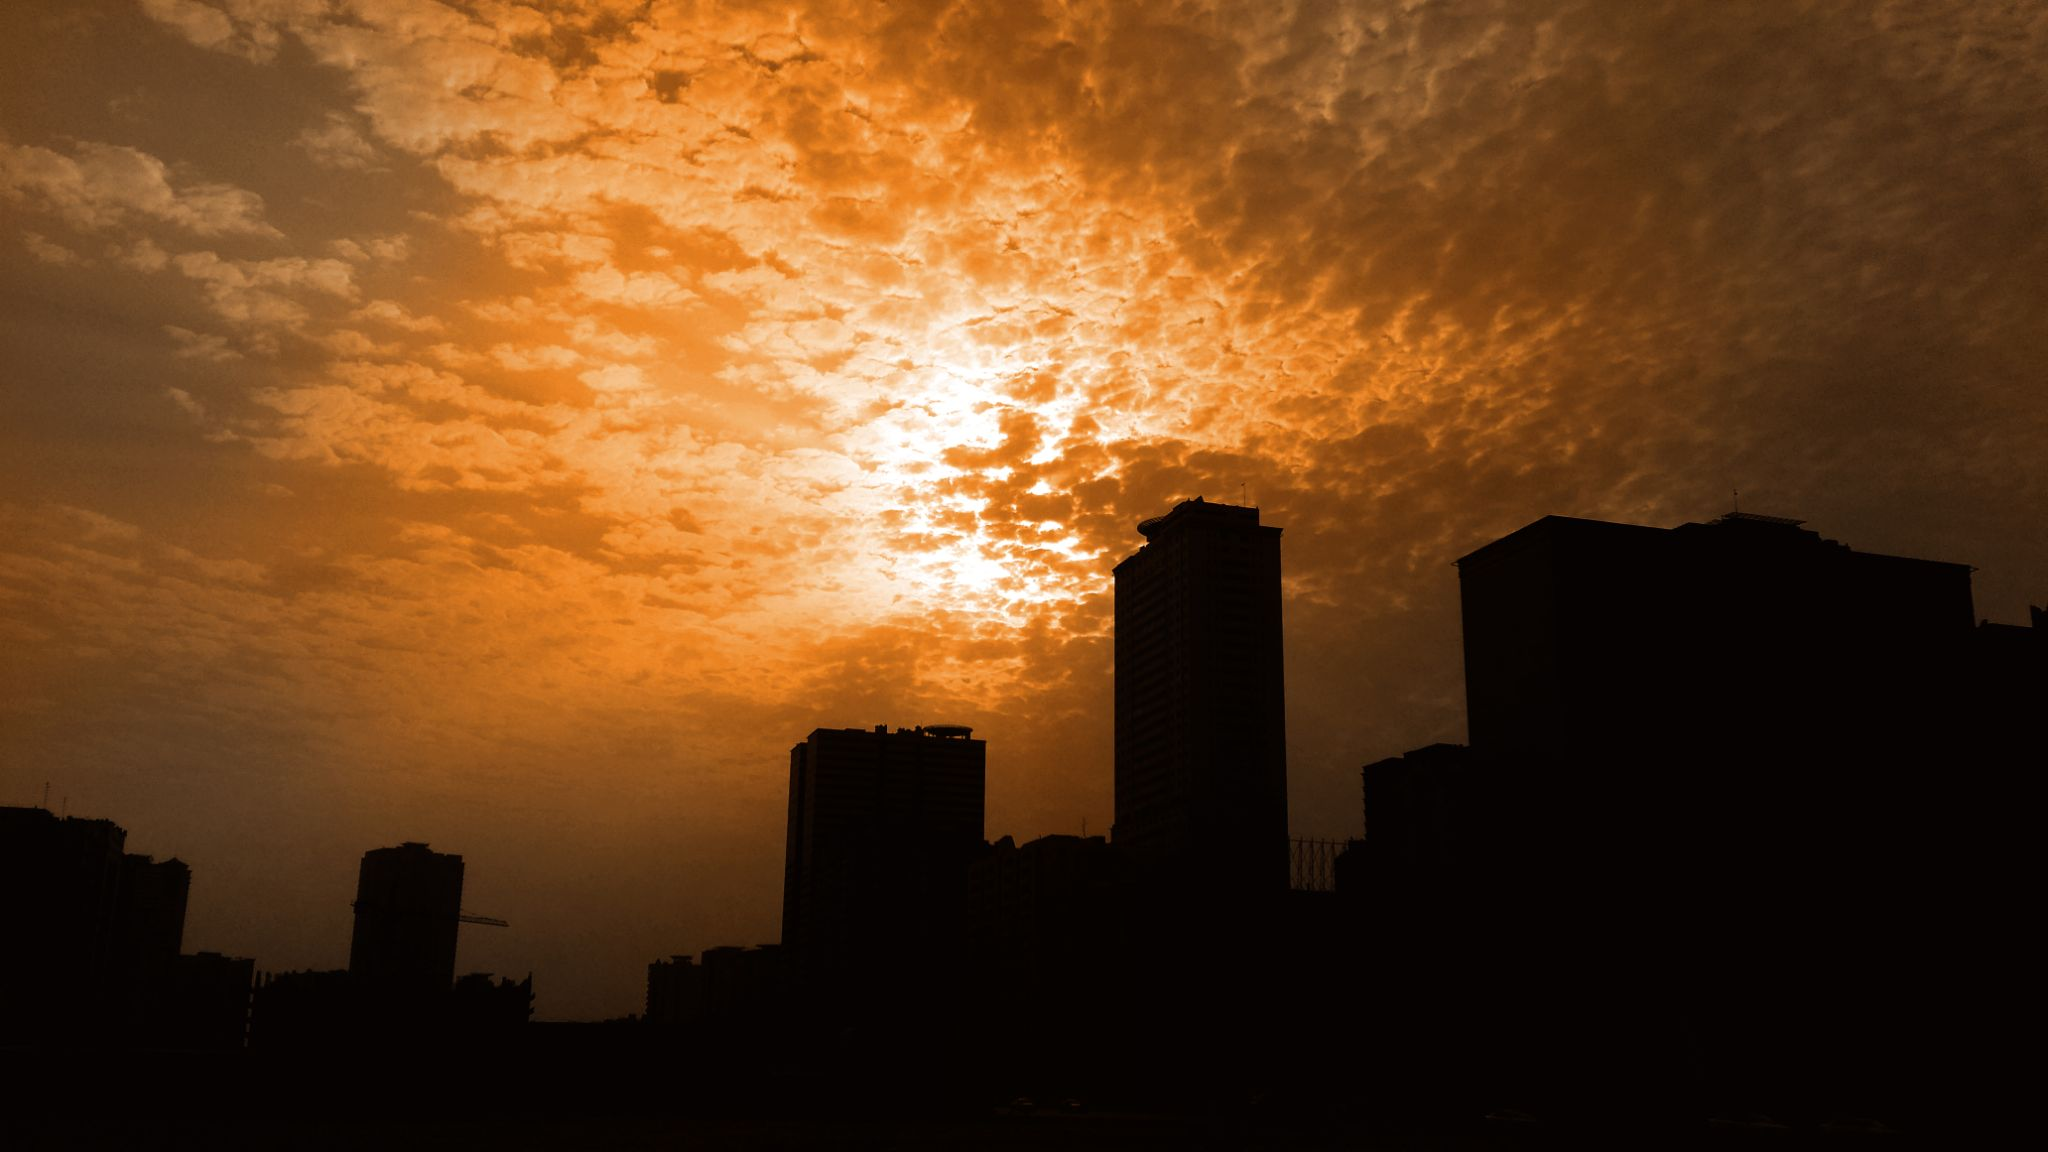 A cloudy sunny morning :) by Monty Clicks